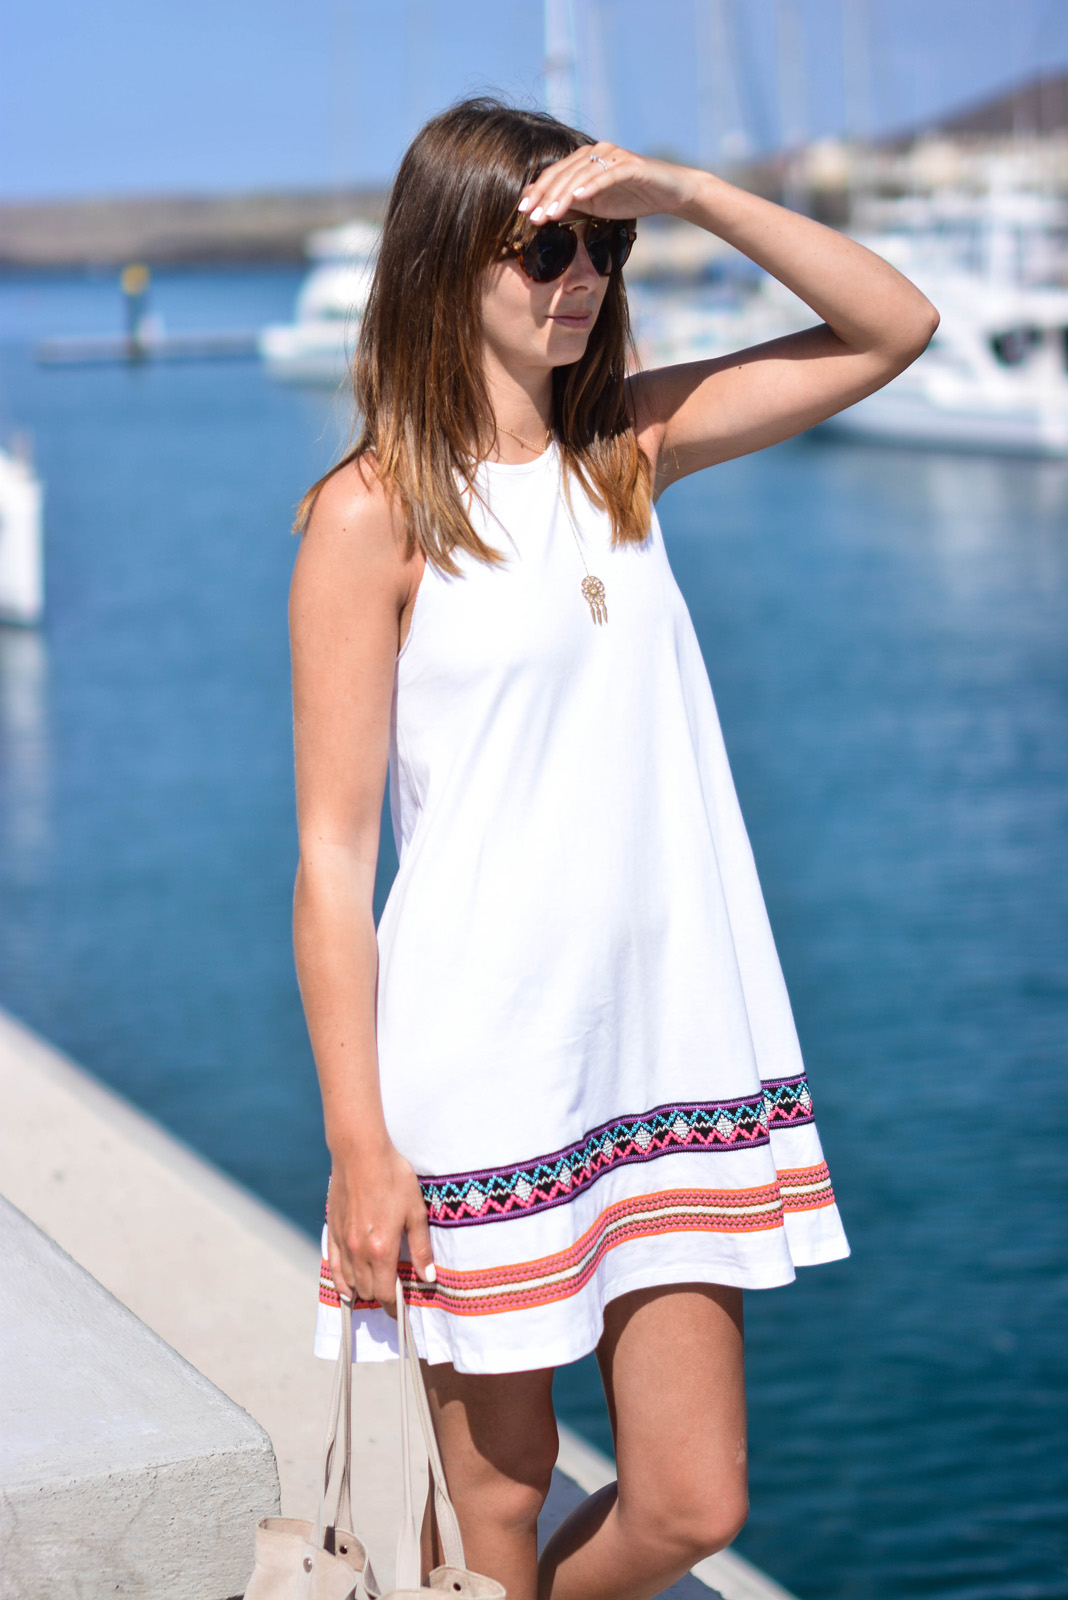 EJSTYLE - Emma Hill Wears ASOS white swing dresswith colourful hem detail, asos round bridge sunglasses